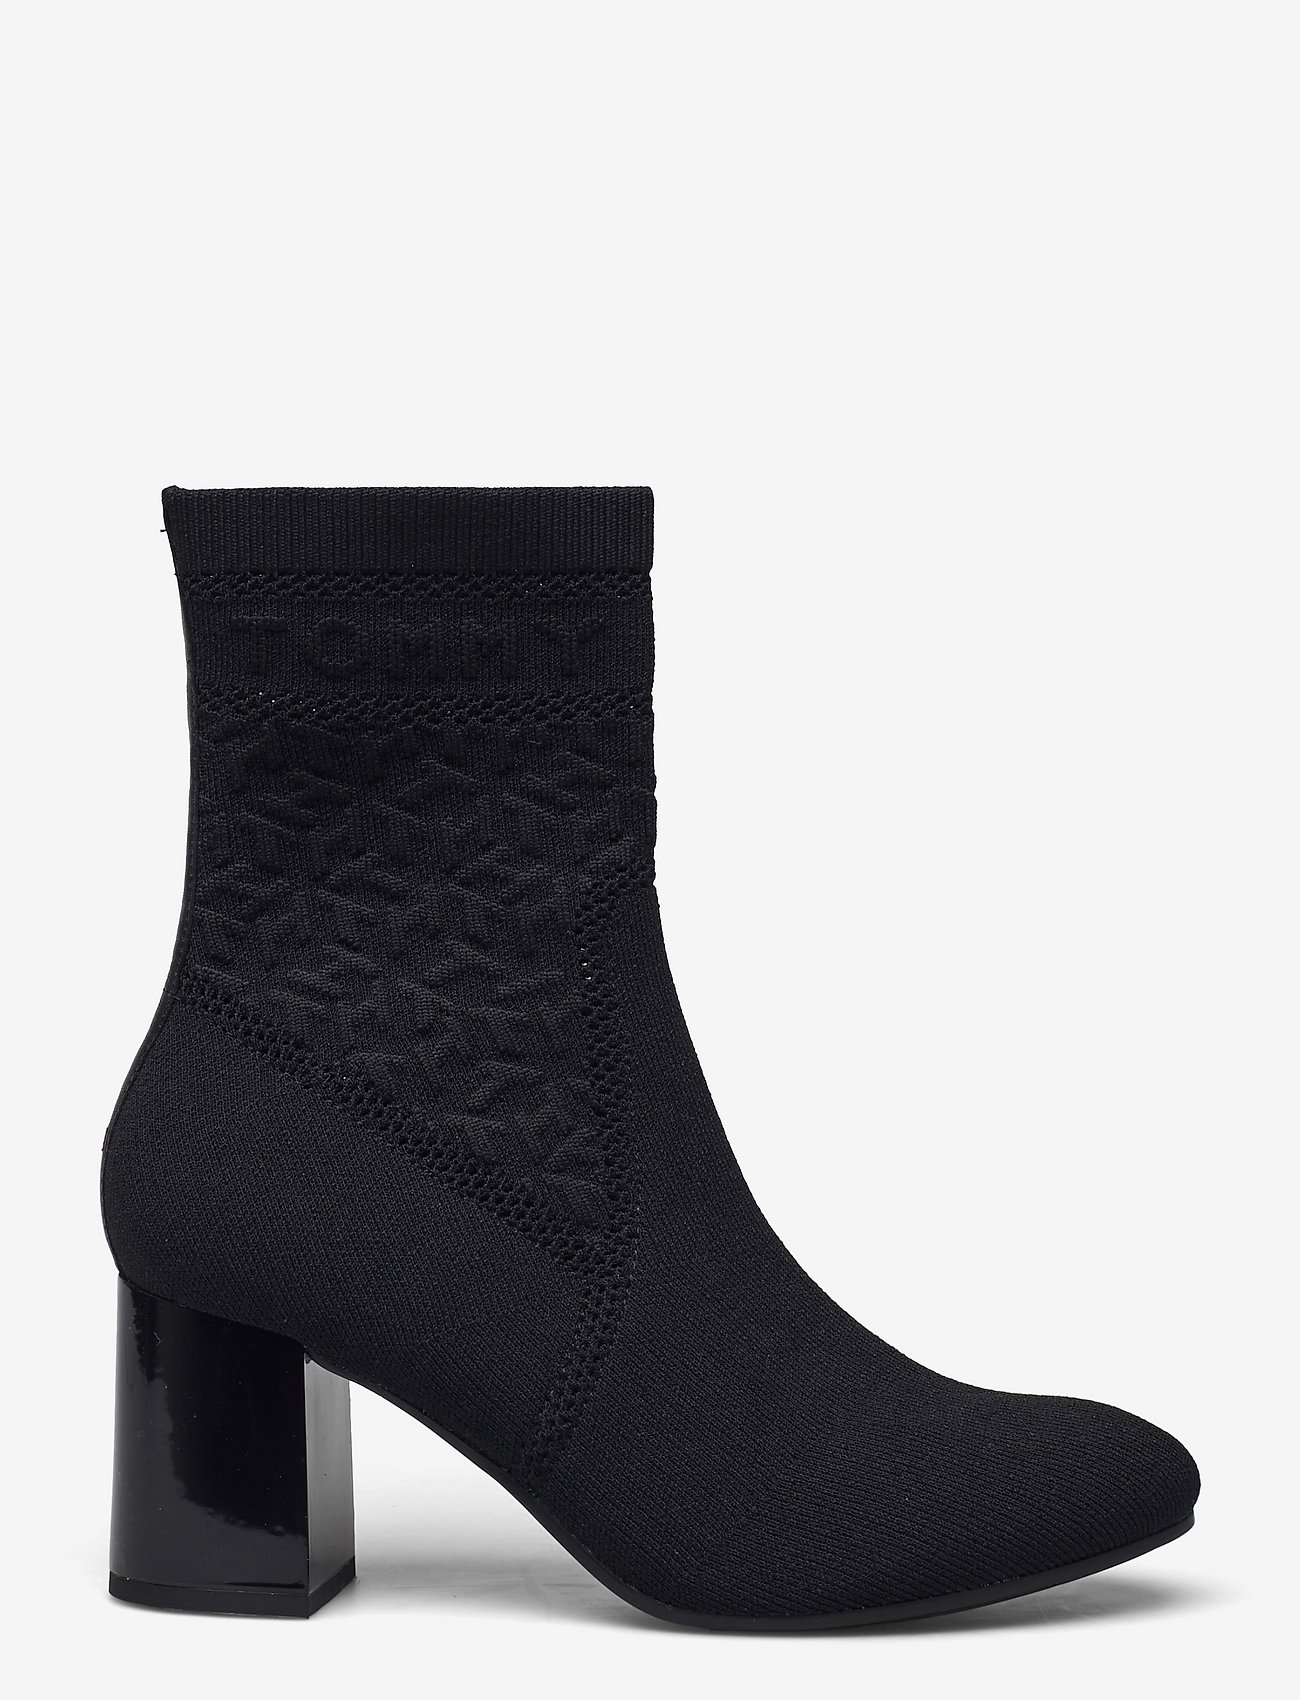 Tommy Hilfiger - TH KNITTED MID HEEL BOOT - heeled ankle boots - black - 1